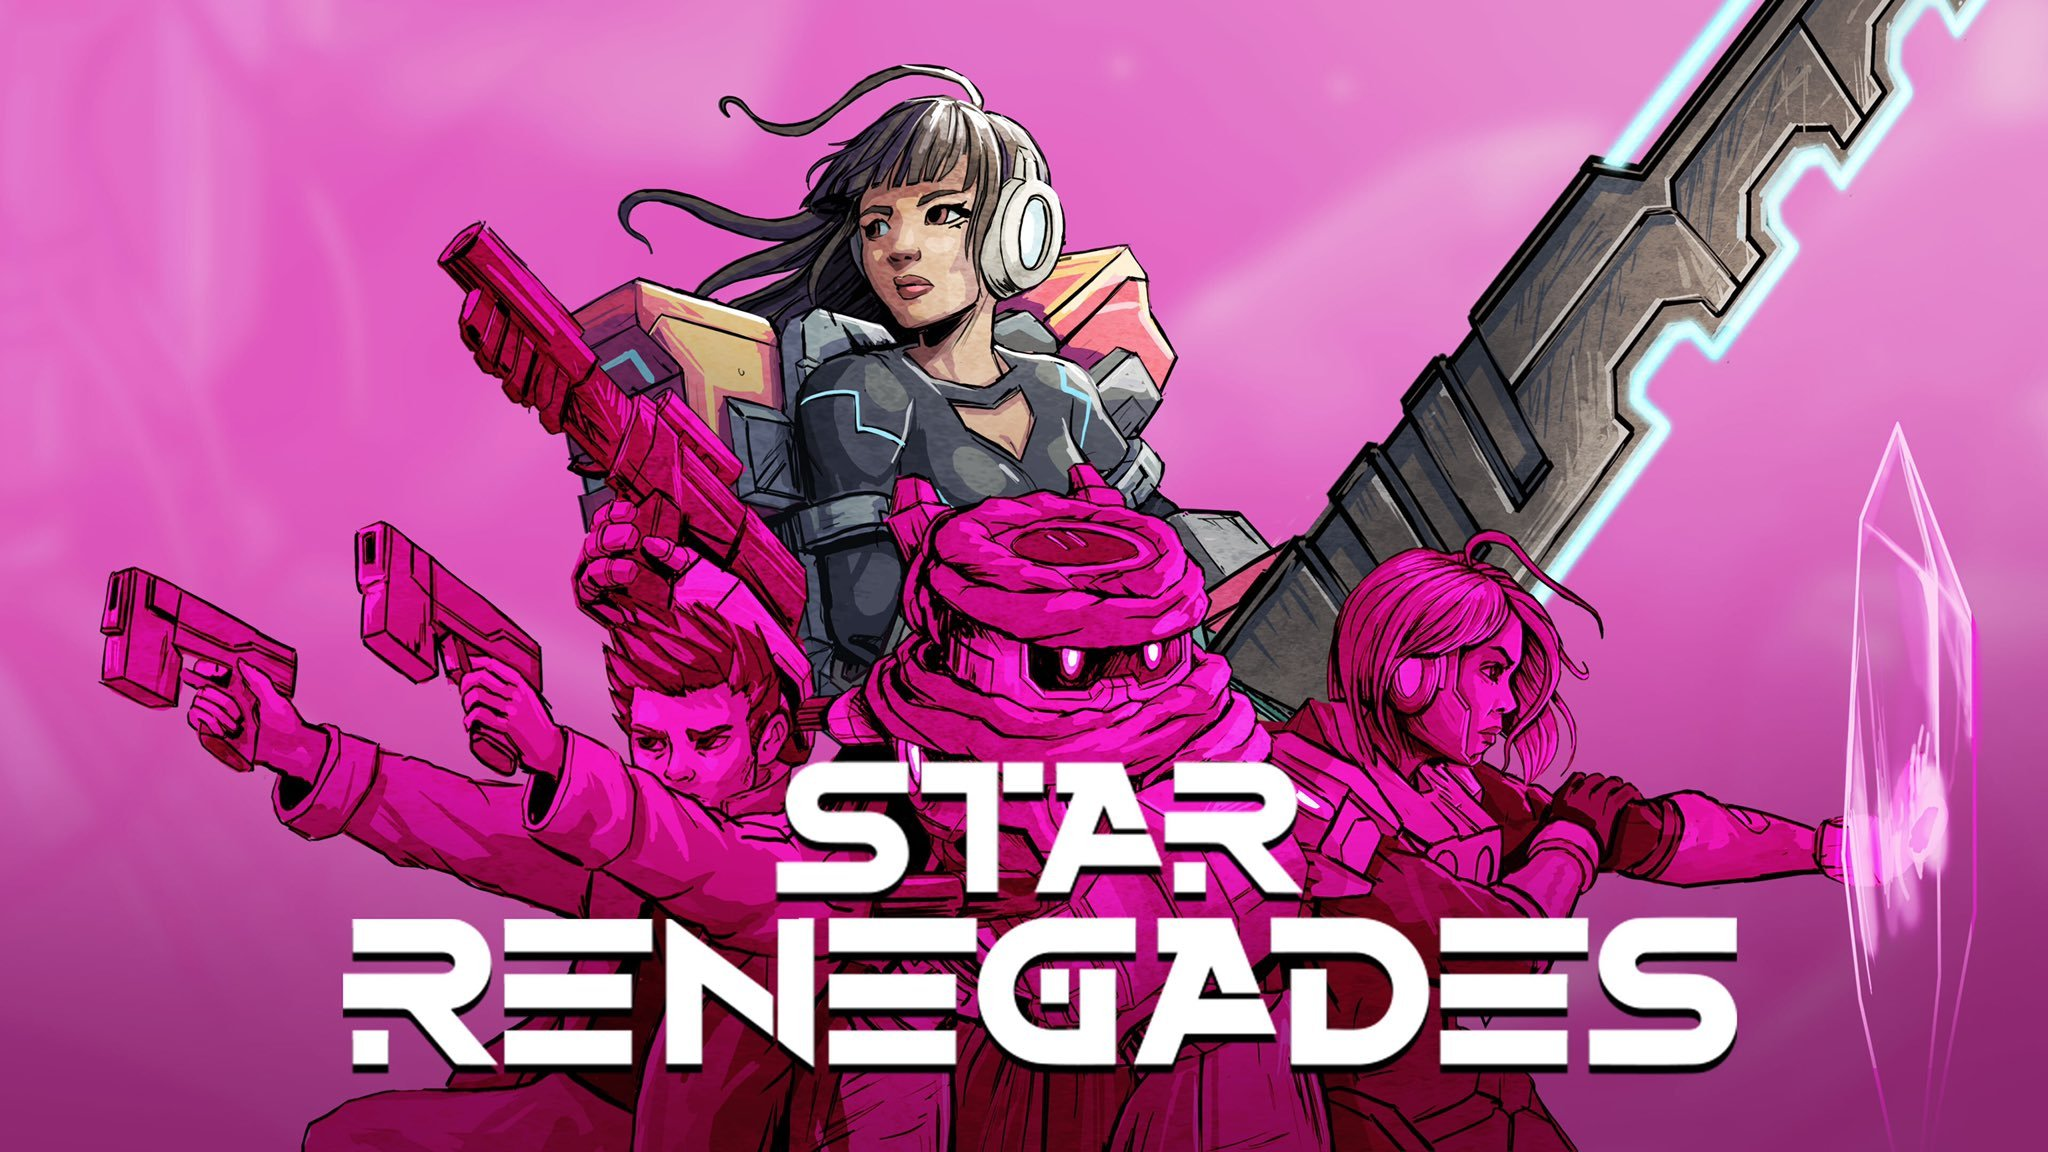 Star Renegades Set For Nintendo Switch, PS4 and Xbox One This Month